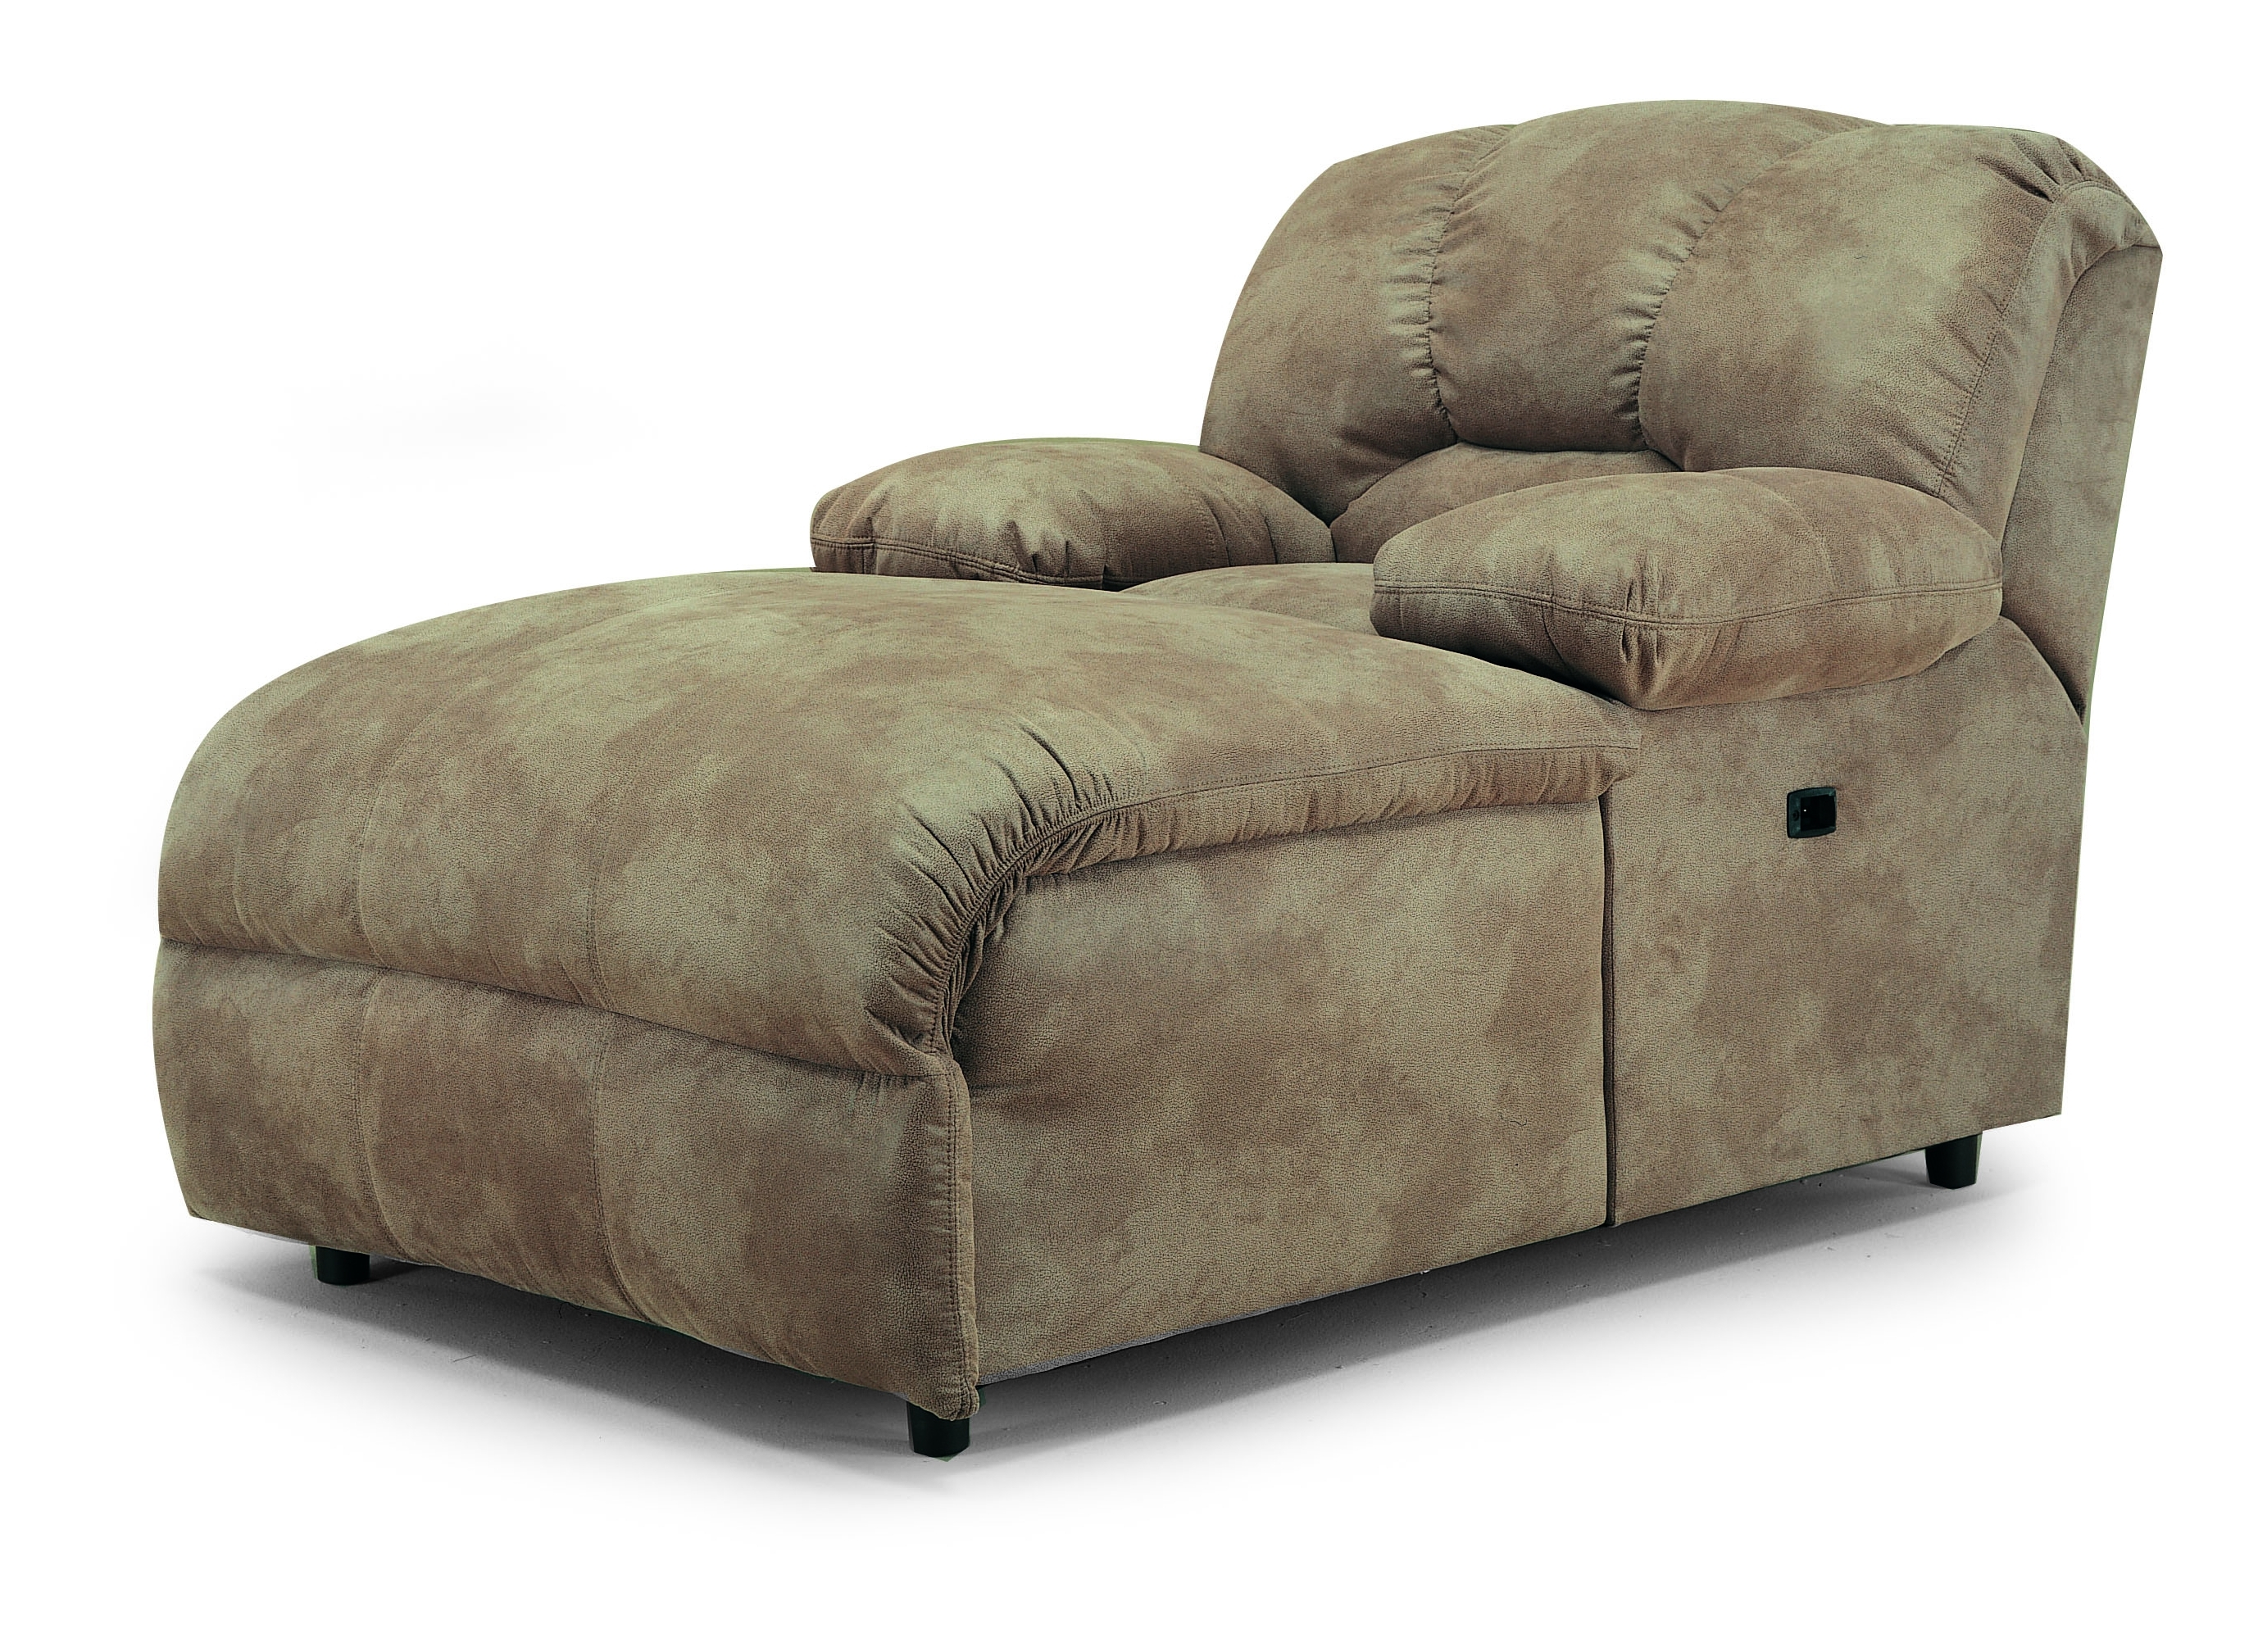 Widely Used Reclining Chaises Regarding Popular Of Reclining Chaise Lounge With Recliner Chaise Lounge My (View 15 of 15)